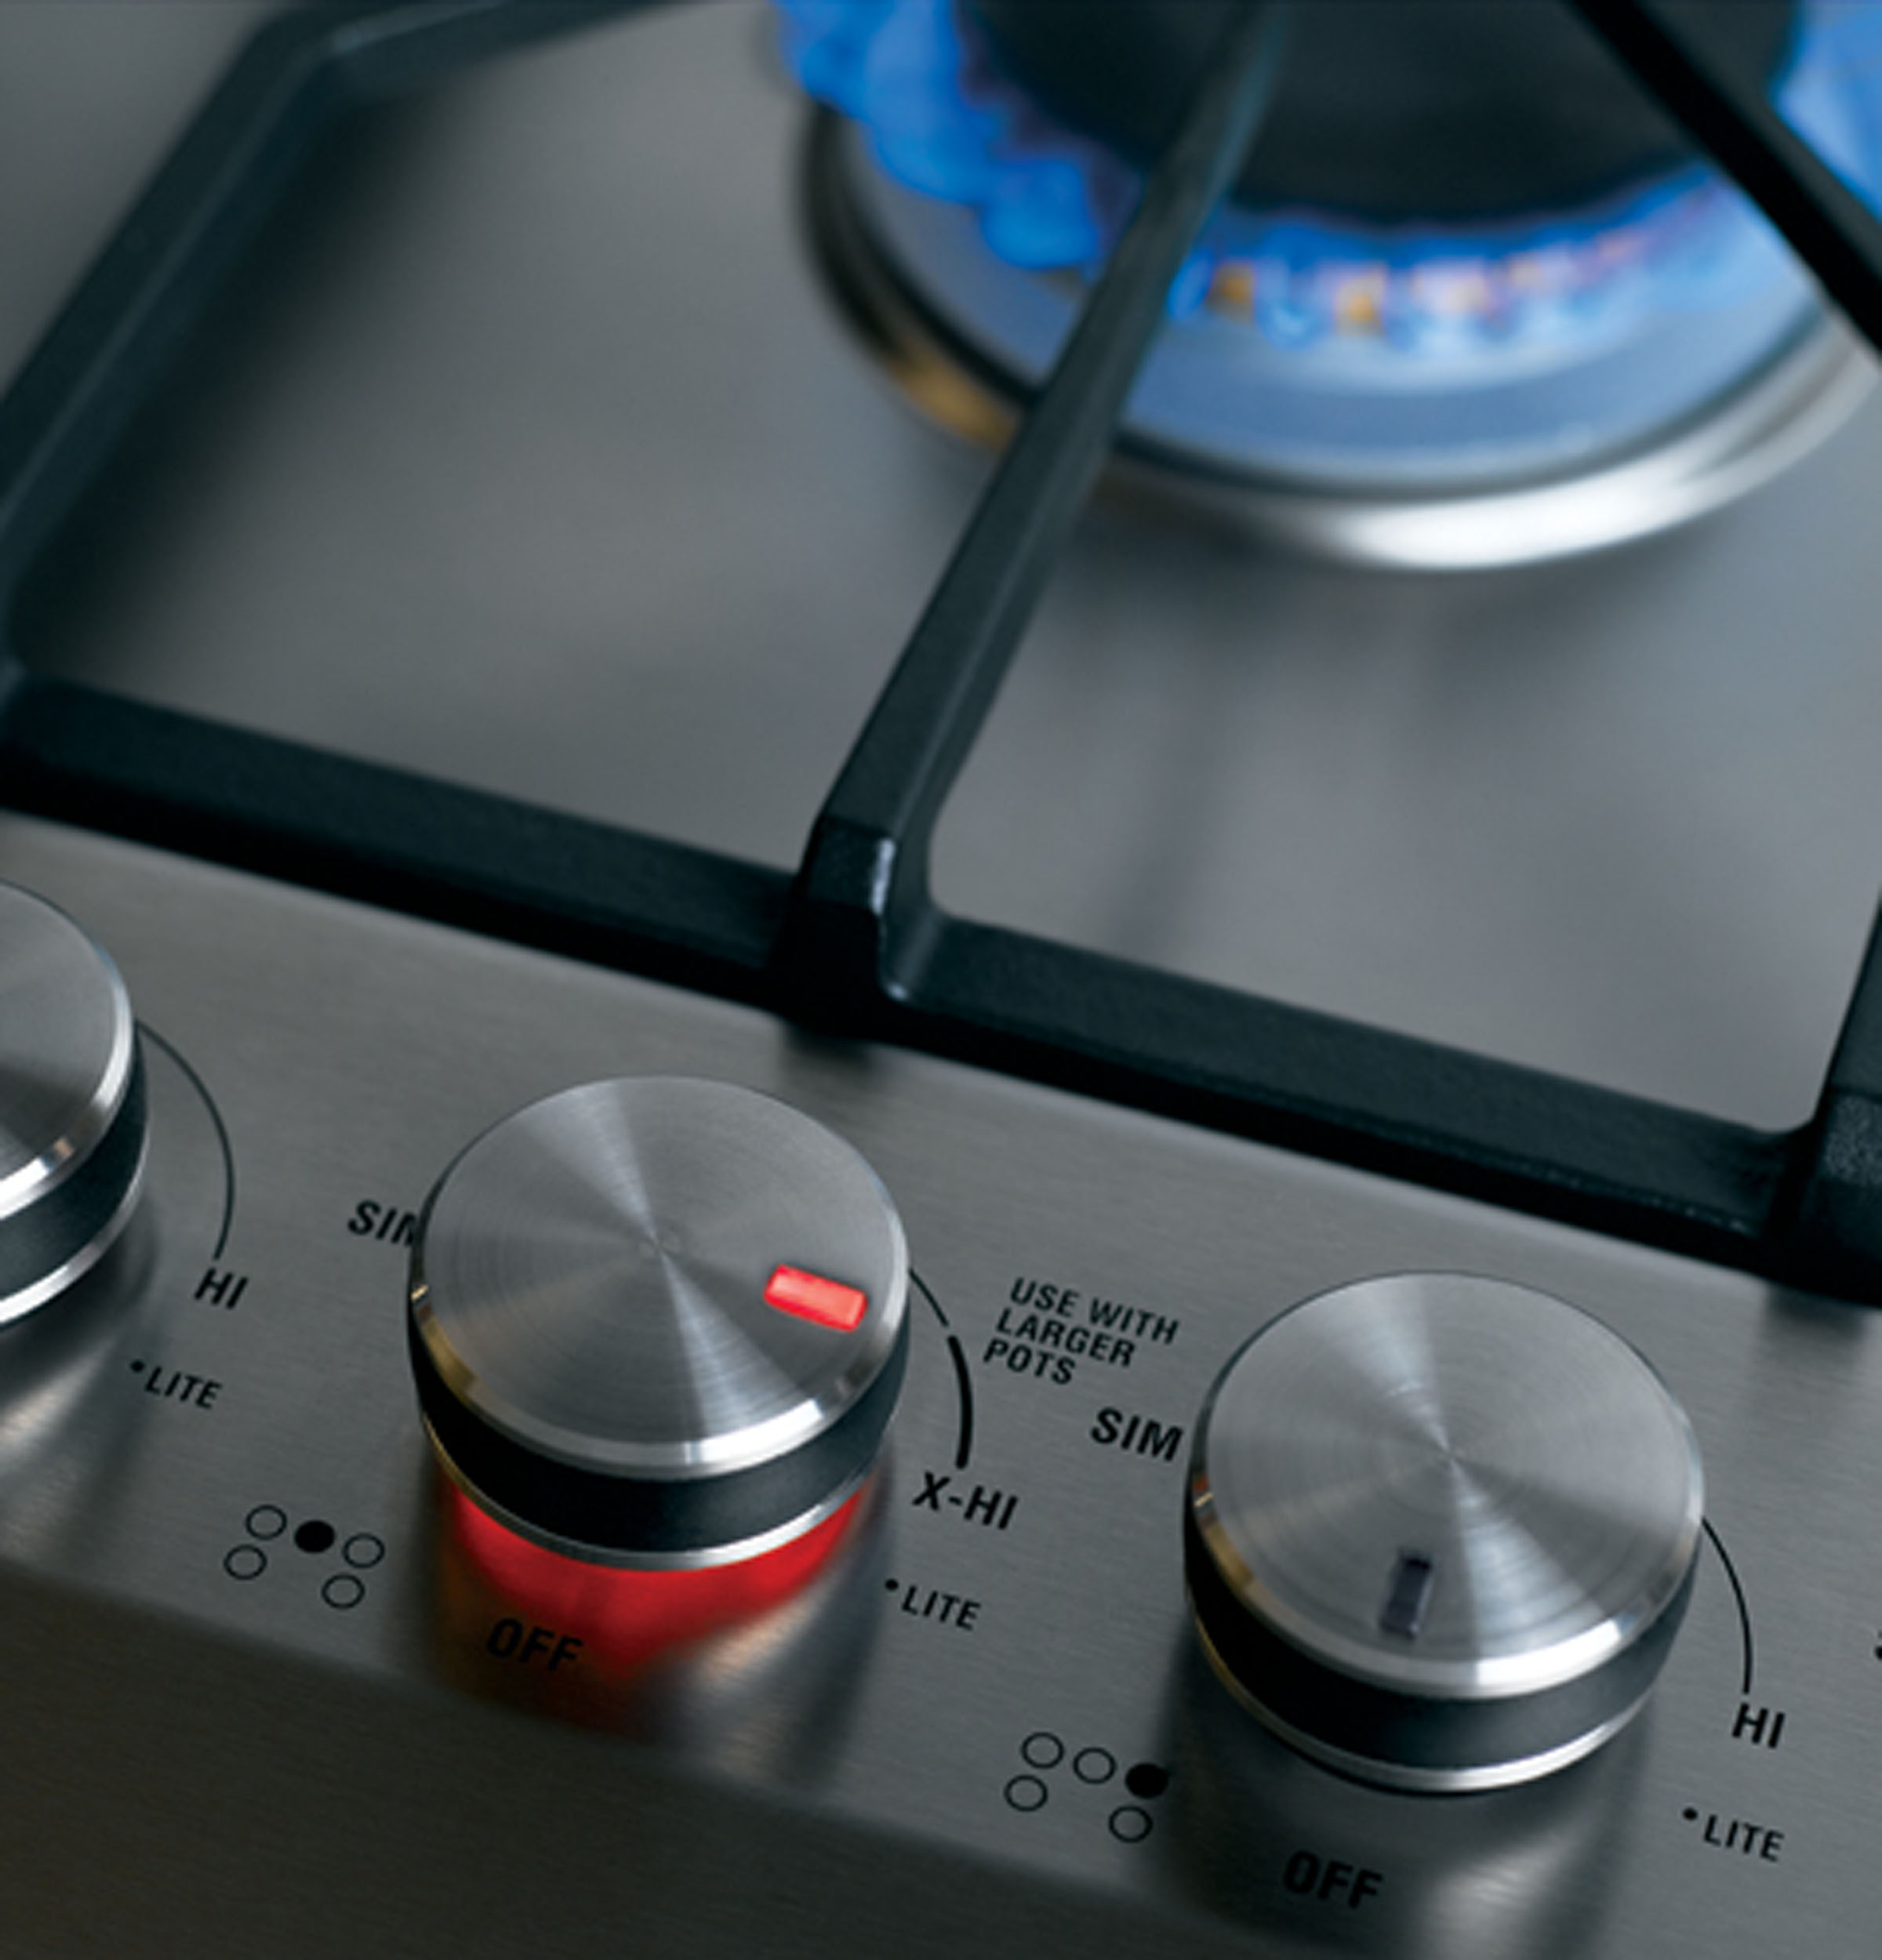 Zgu385nsmss Monogram 36 Quot Stainless Steel Gas Cooktop